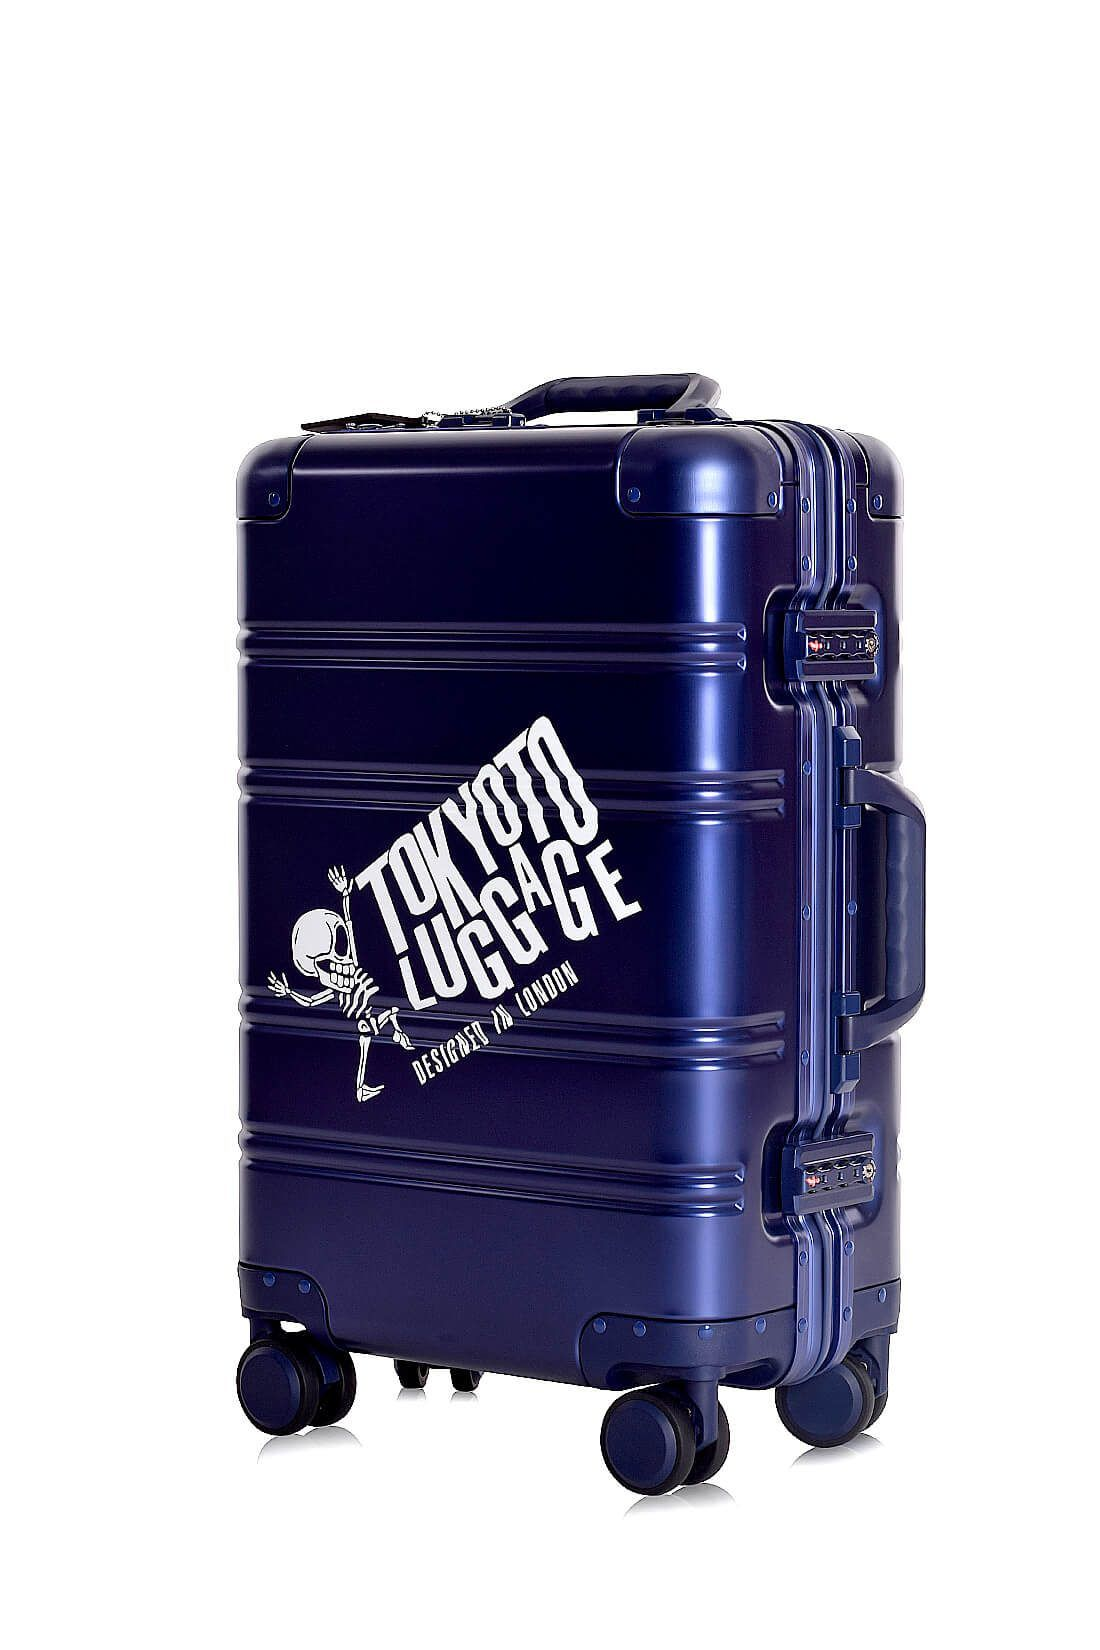 Valise Aluminium Online Cabine Trolley Avec Chargeur Powerbank TOKYOTO LUGGAGE Modelle BLUE LOGO 9